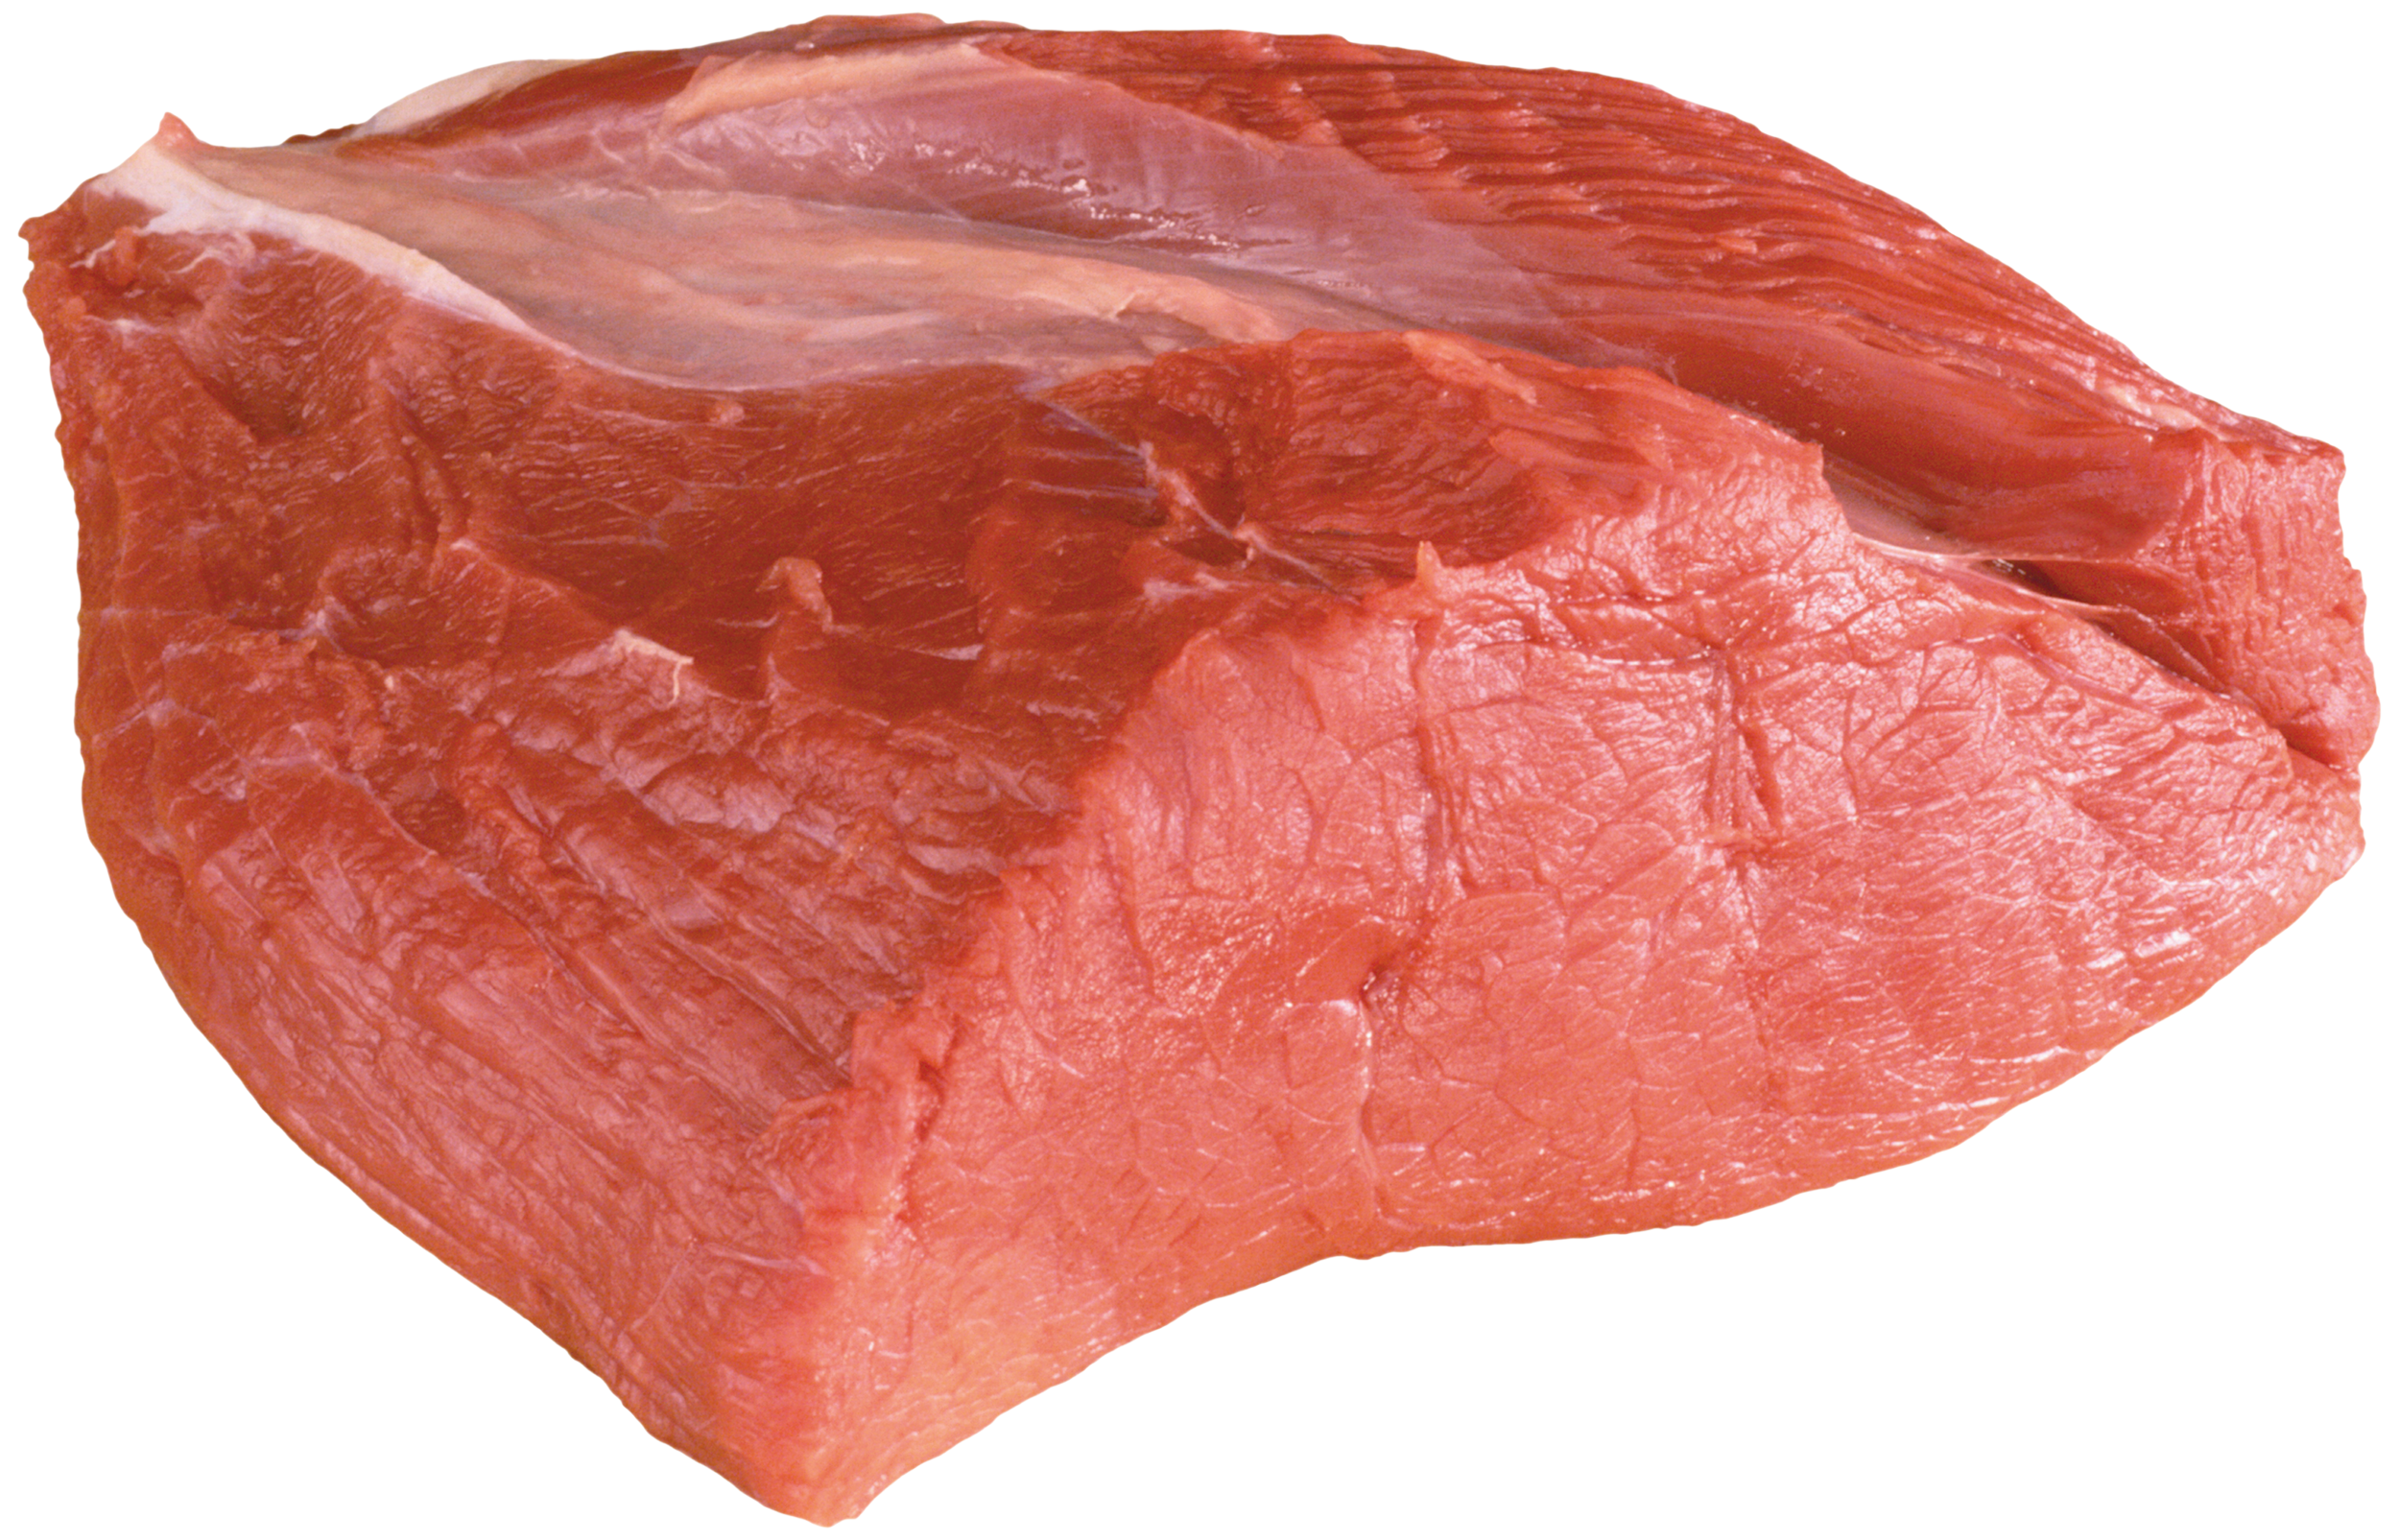 Beef clipart veal. Raw meat png best